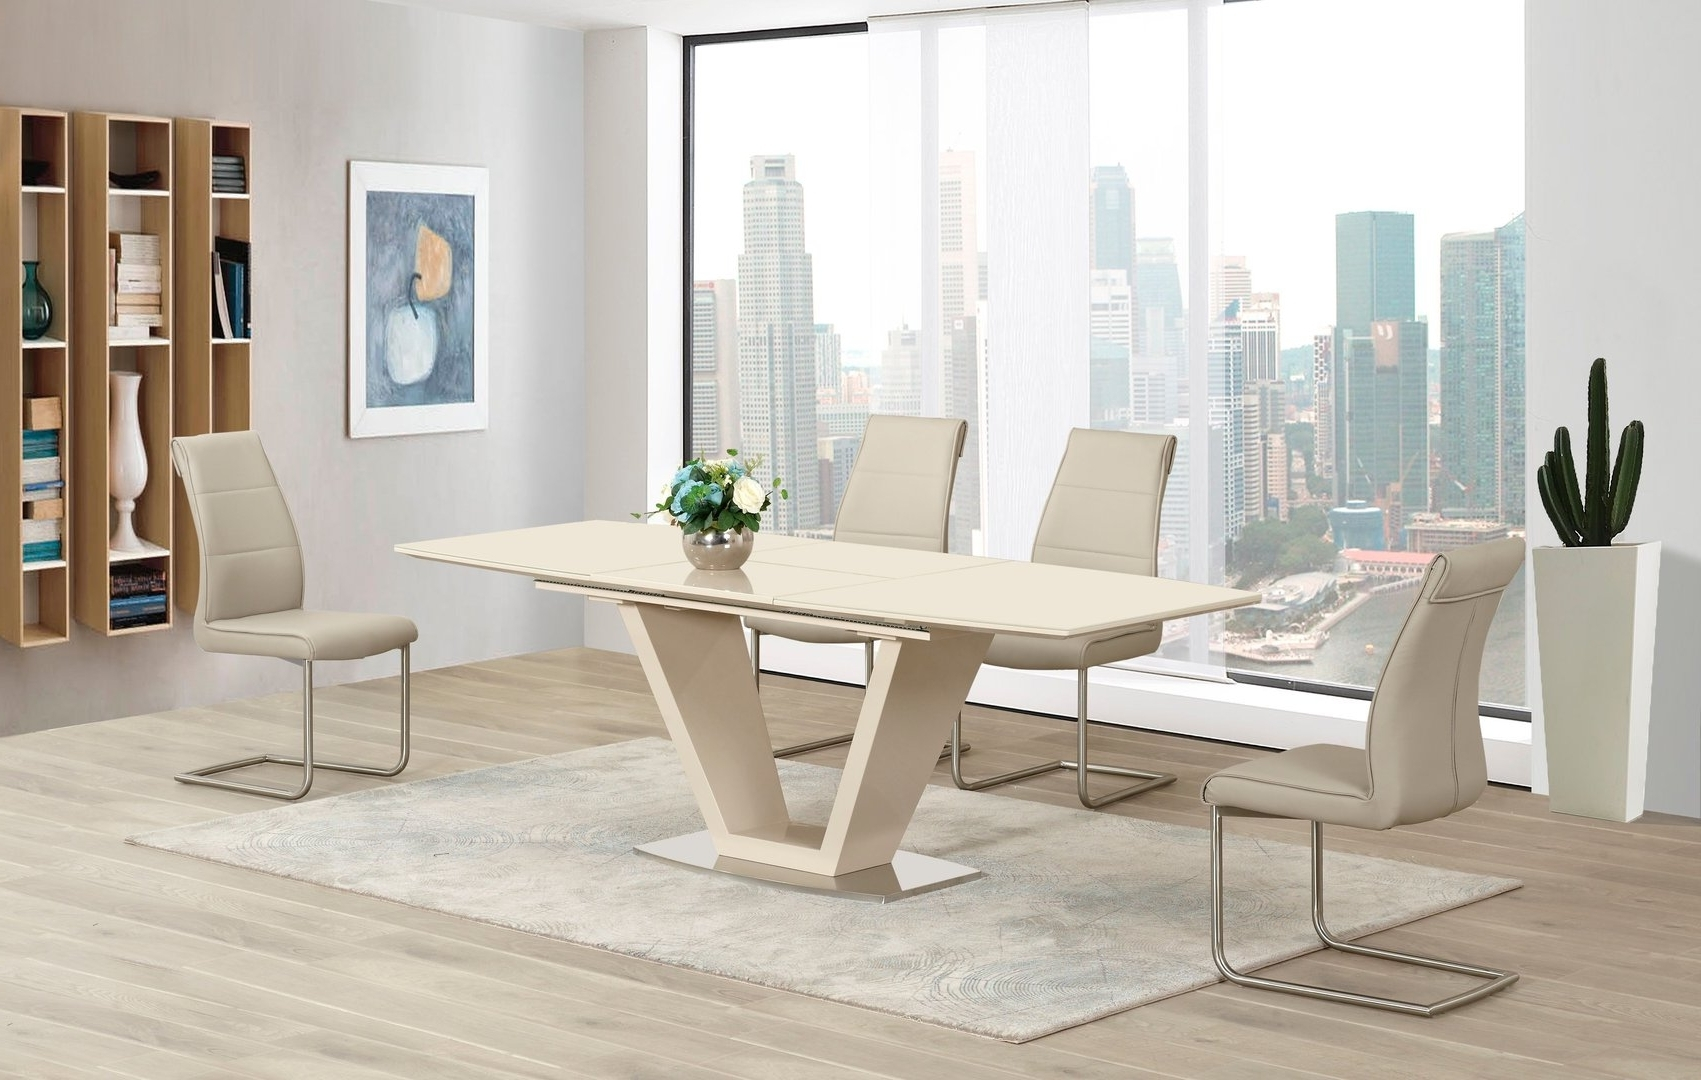 Cream Extending Glass High Gloss Dining Table And 6 Taupe Chairs Within Best And Newest Glass Extendable Dining Tables And 6 Chairs (Gallery 2 of 25)